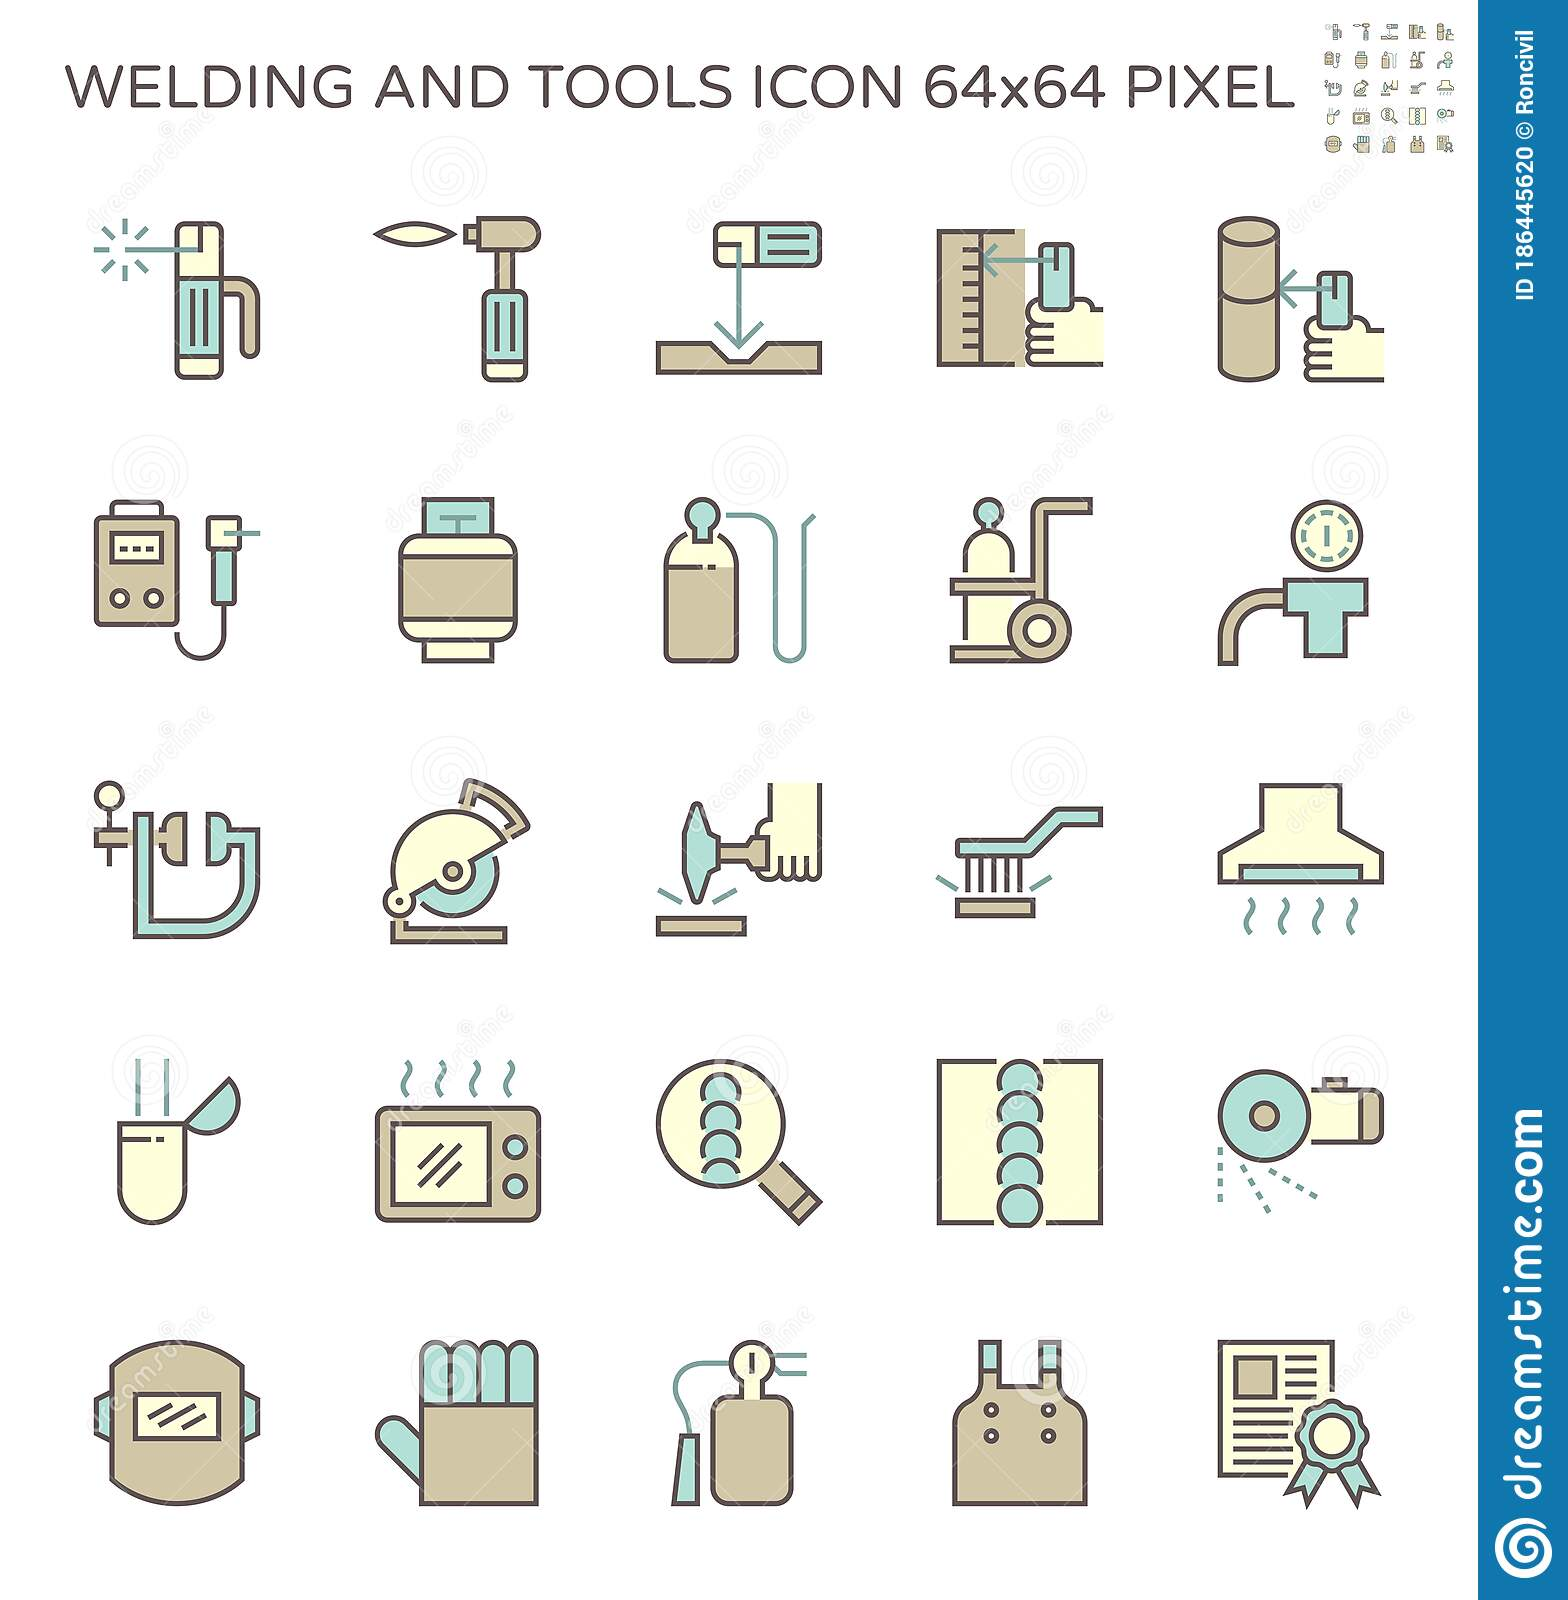 Welding Work And Tools Such As Welding Torch Gas Cutting Tool And Other Vector Icon Set Design 64x64 Perfect Pixel And Editable Stock Illustration Illustration Of Industrial Isolated 186445620